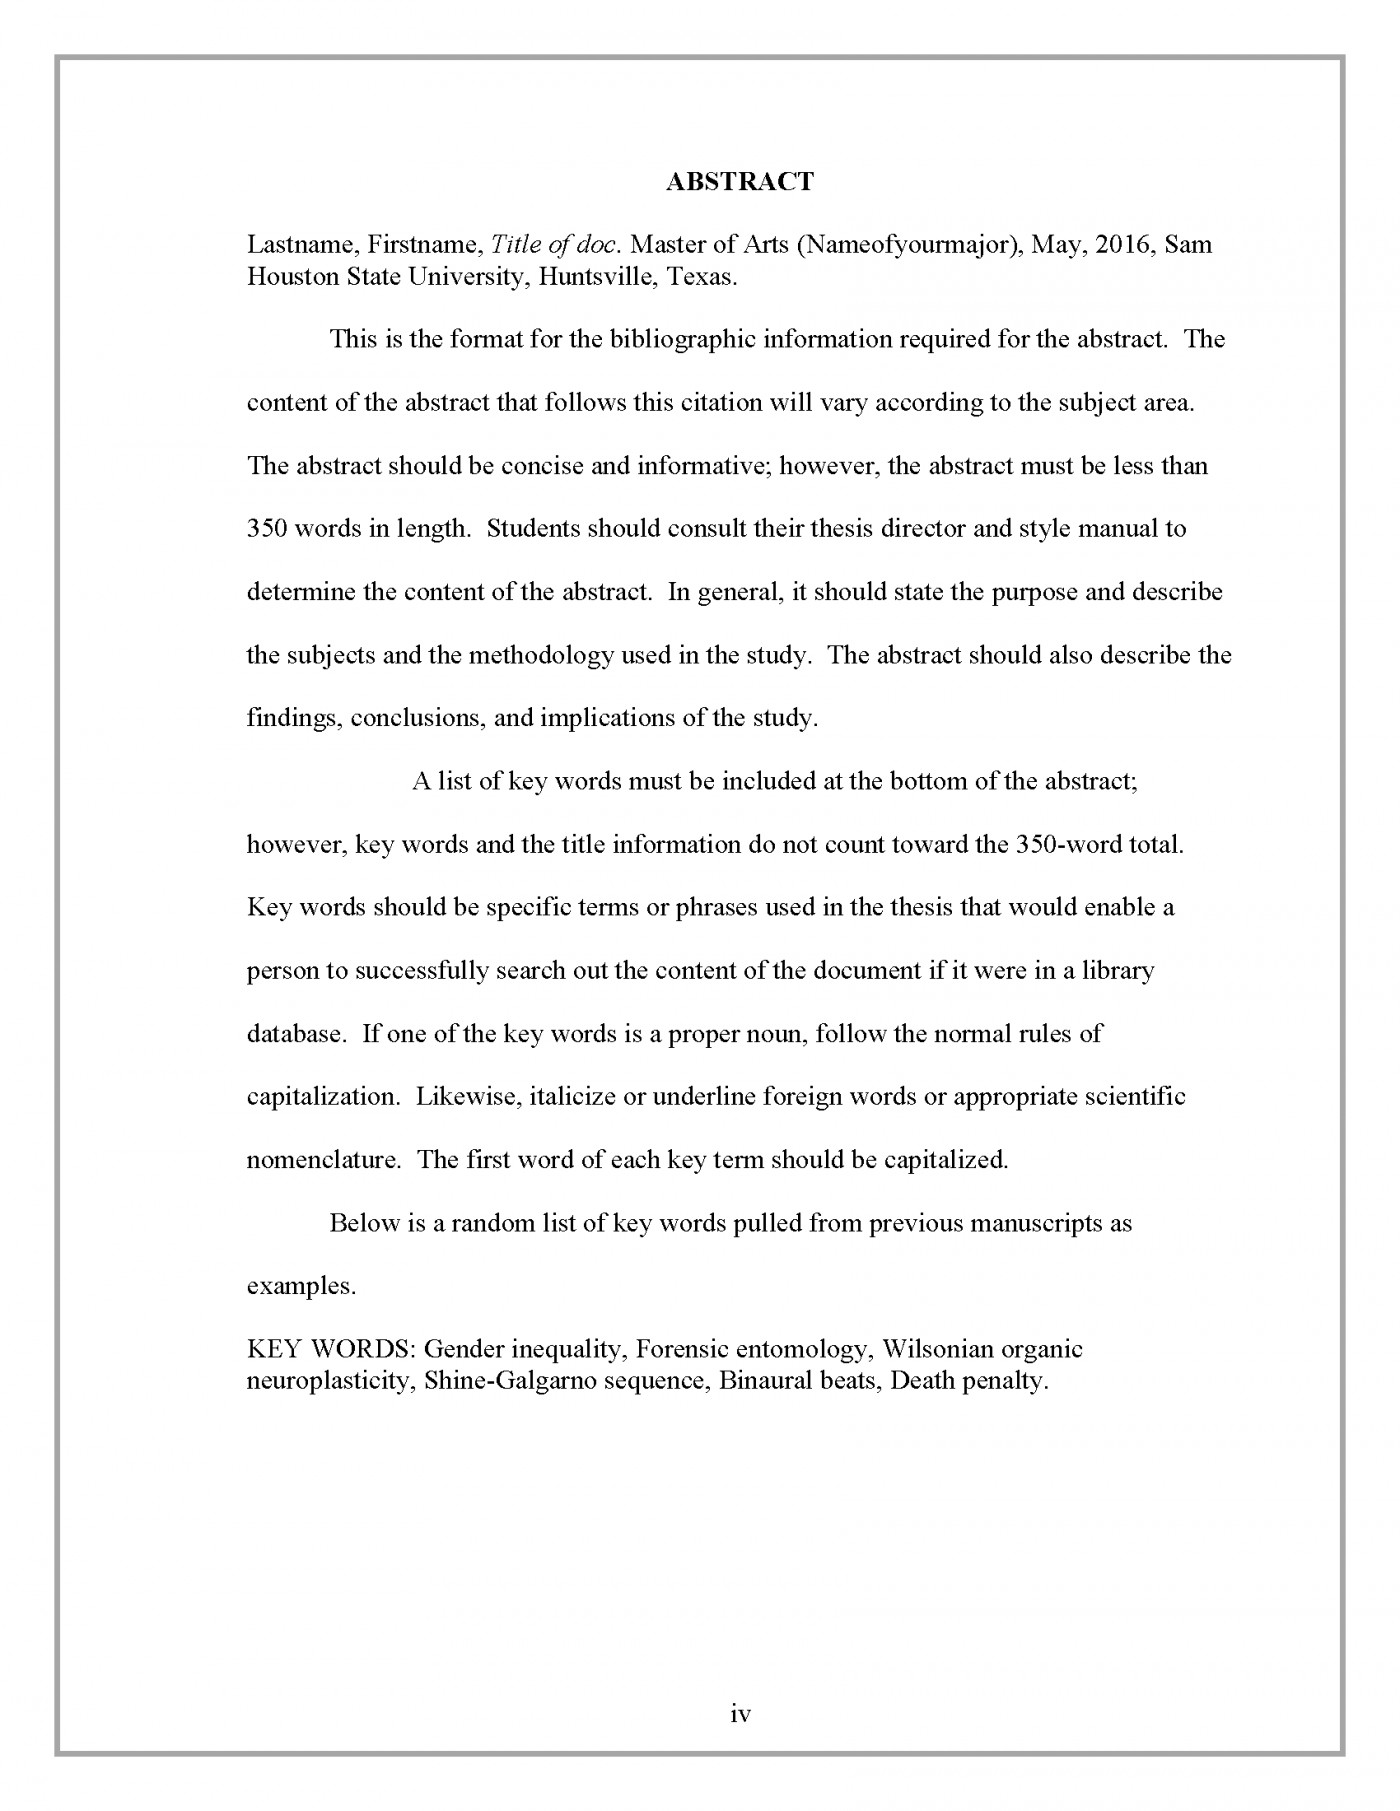 001 Example Of Abstract In Thesis Paper Research Border ~ Museumlegs